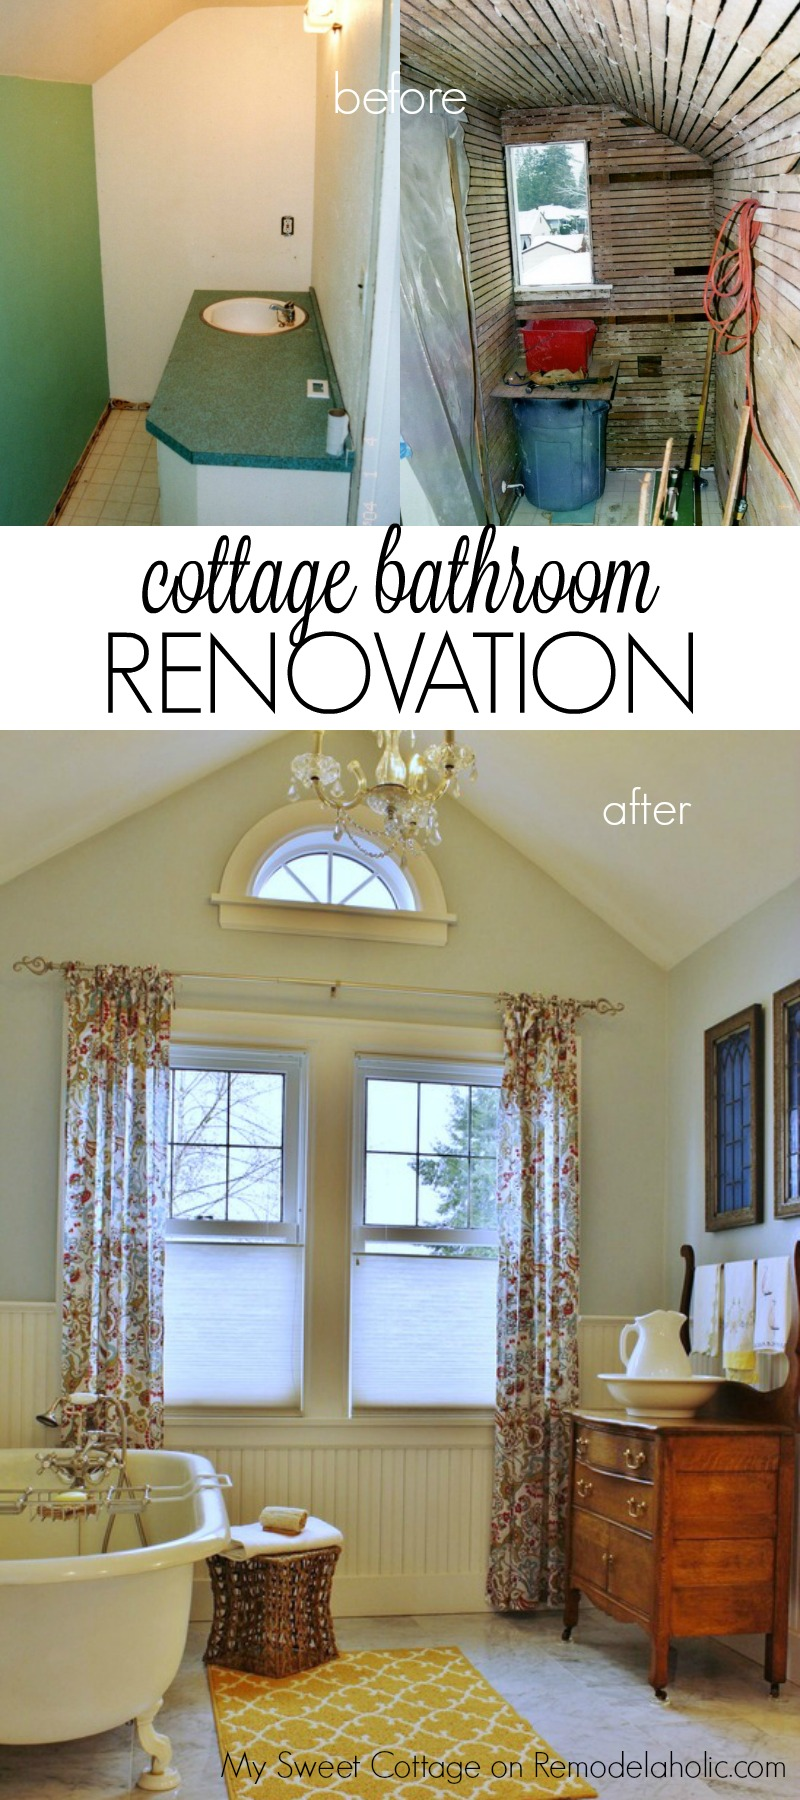 Spectacular Renovating a us cottage and adding a dormer to turn a small closet into a beautiful